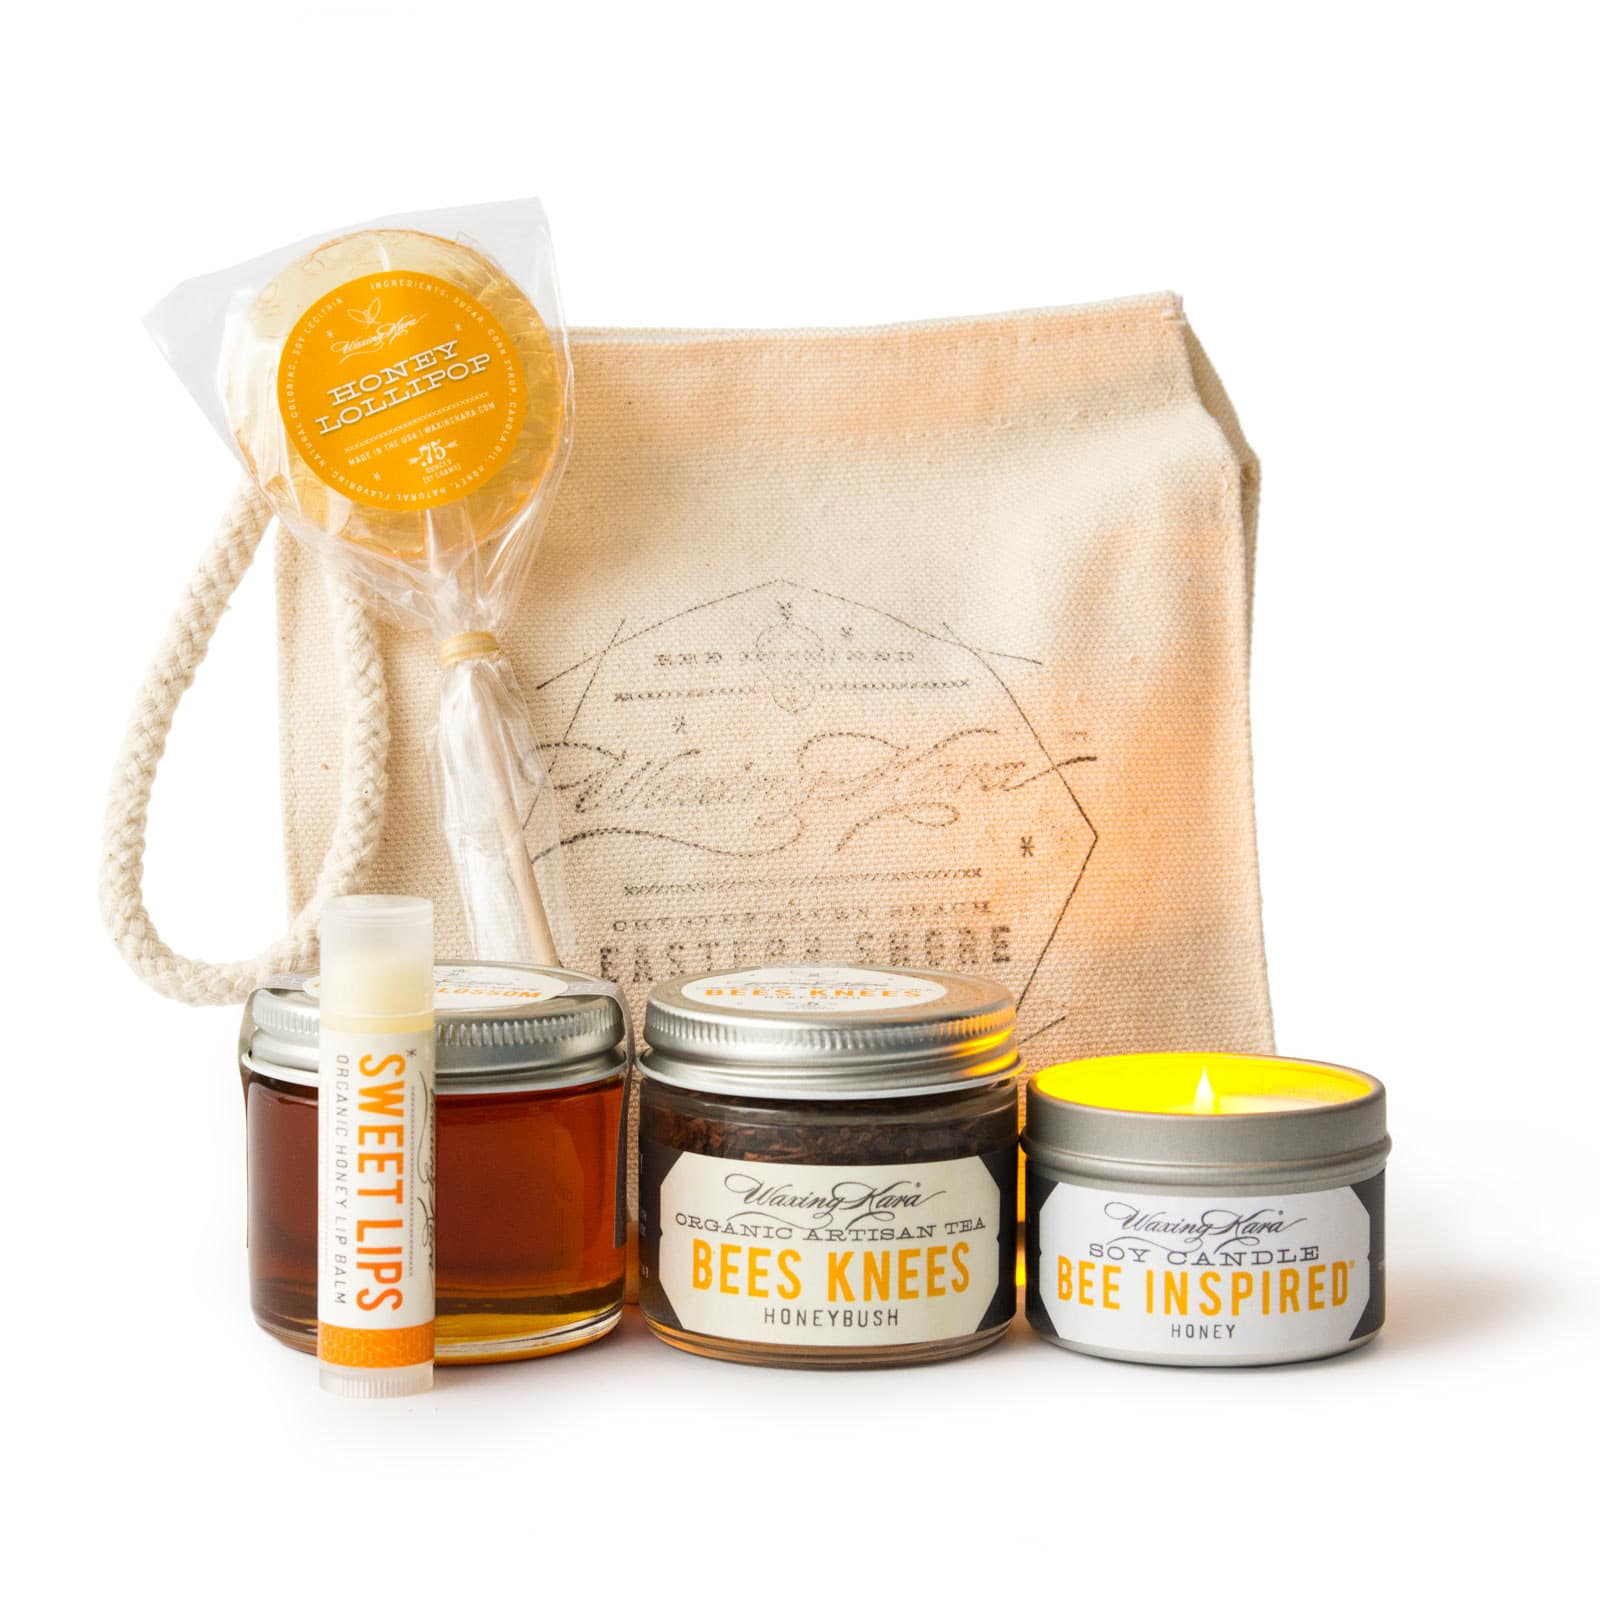 Bees Knees Thank You Gift Ideas - Giften Market